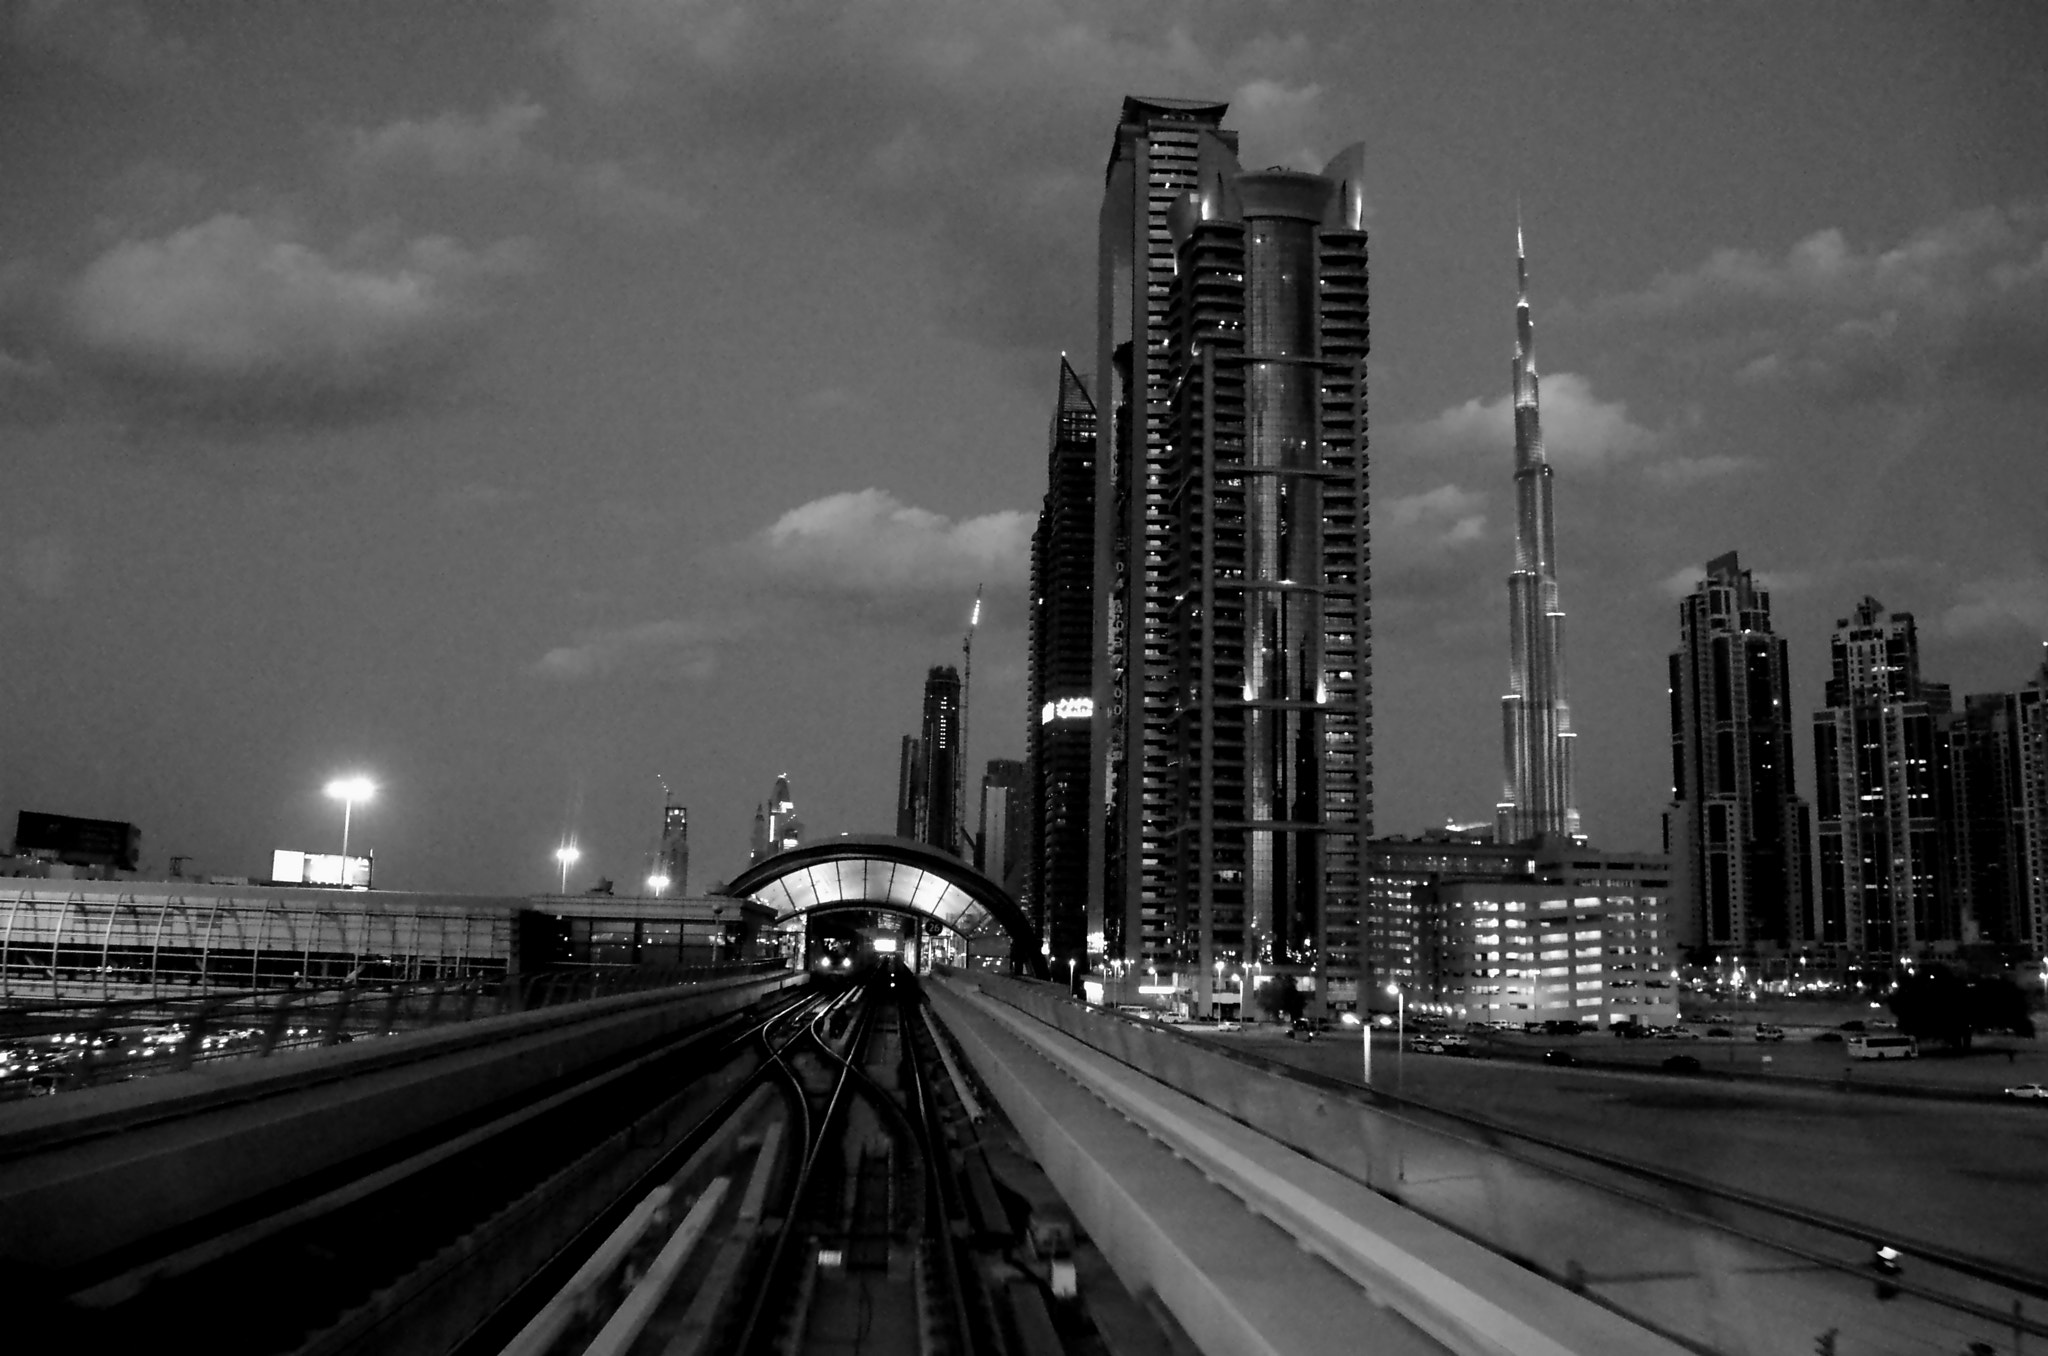 Photograph View of Burj Khalifa from Metro by Shishir Agrawal on 500px